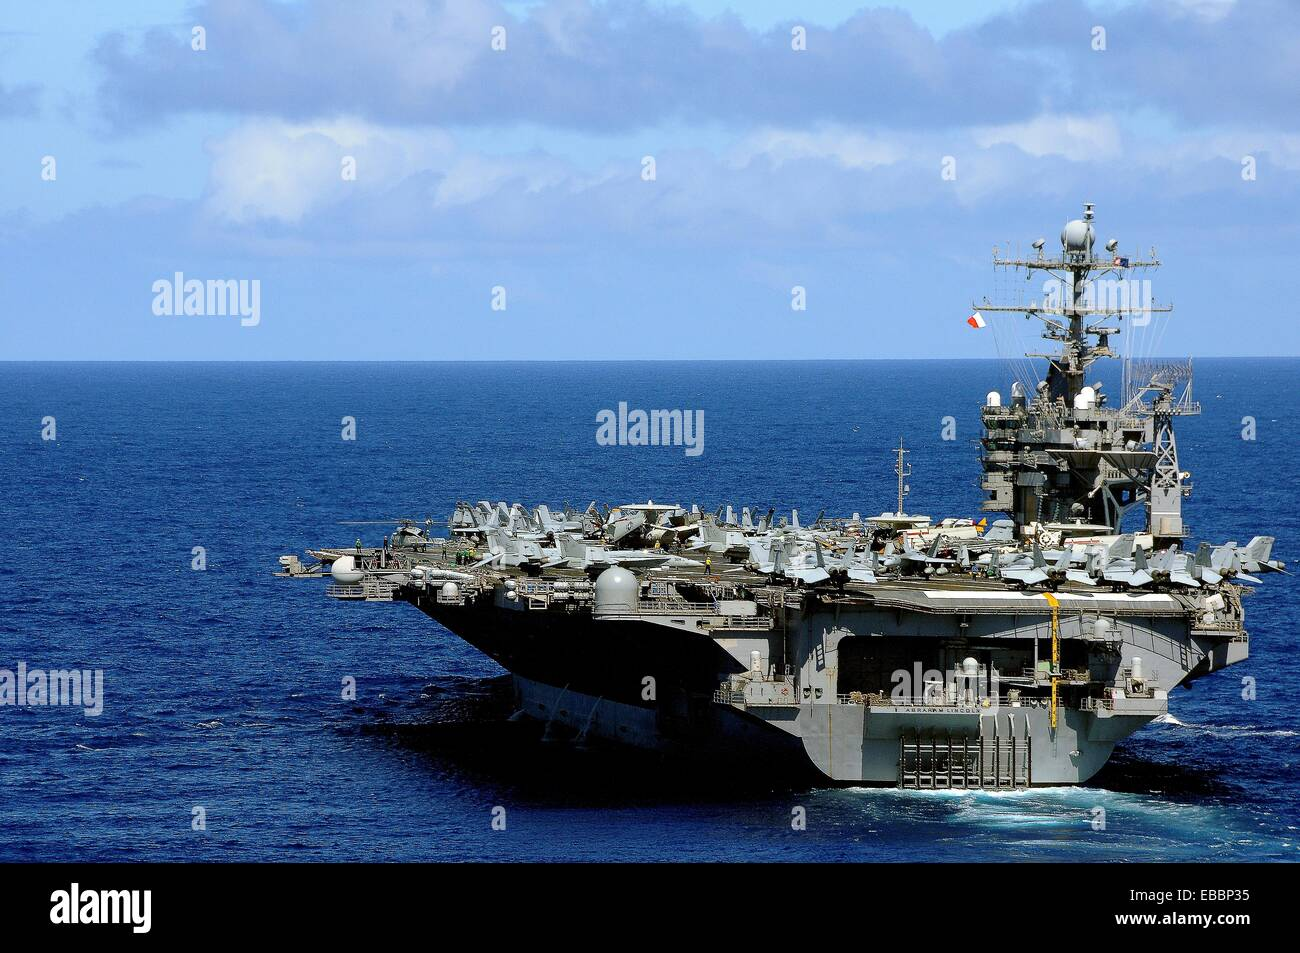 PACIFIC OCEAN Sept  19, 2010 The aircraft carrier USS Abraham Lincoln CVN 72 transits across the Pacific Ocean  - Stock Image